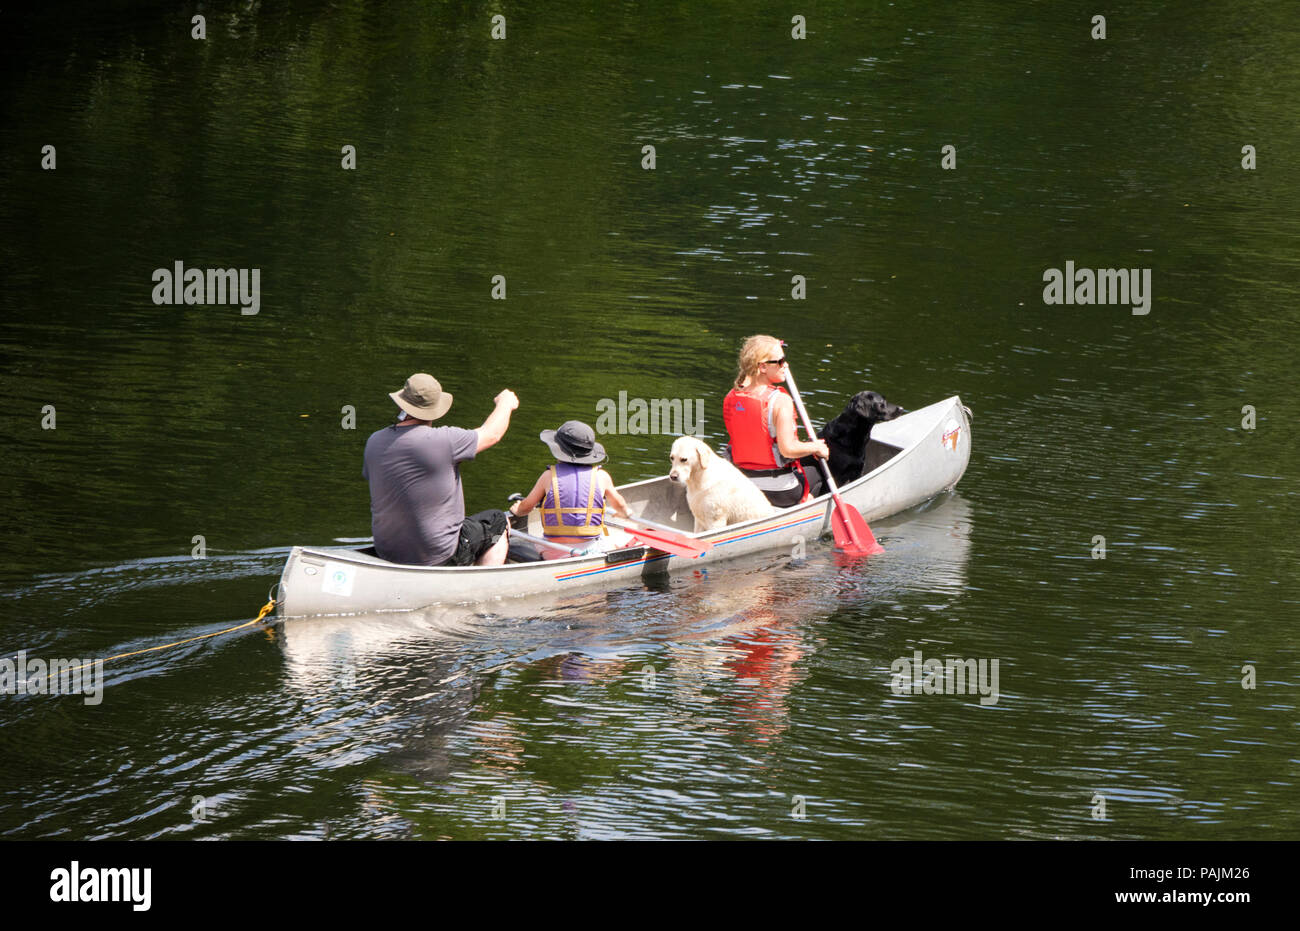 Family canoeing with pet dogs on the River Wye, Herefordshire, England, UK - Stock Image